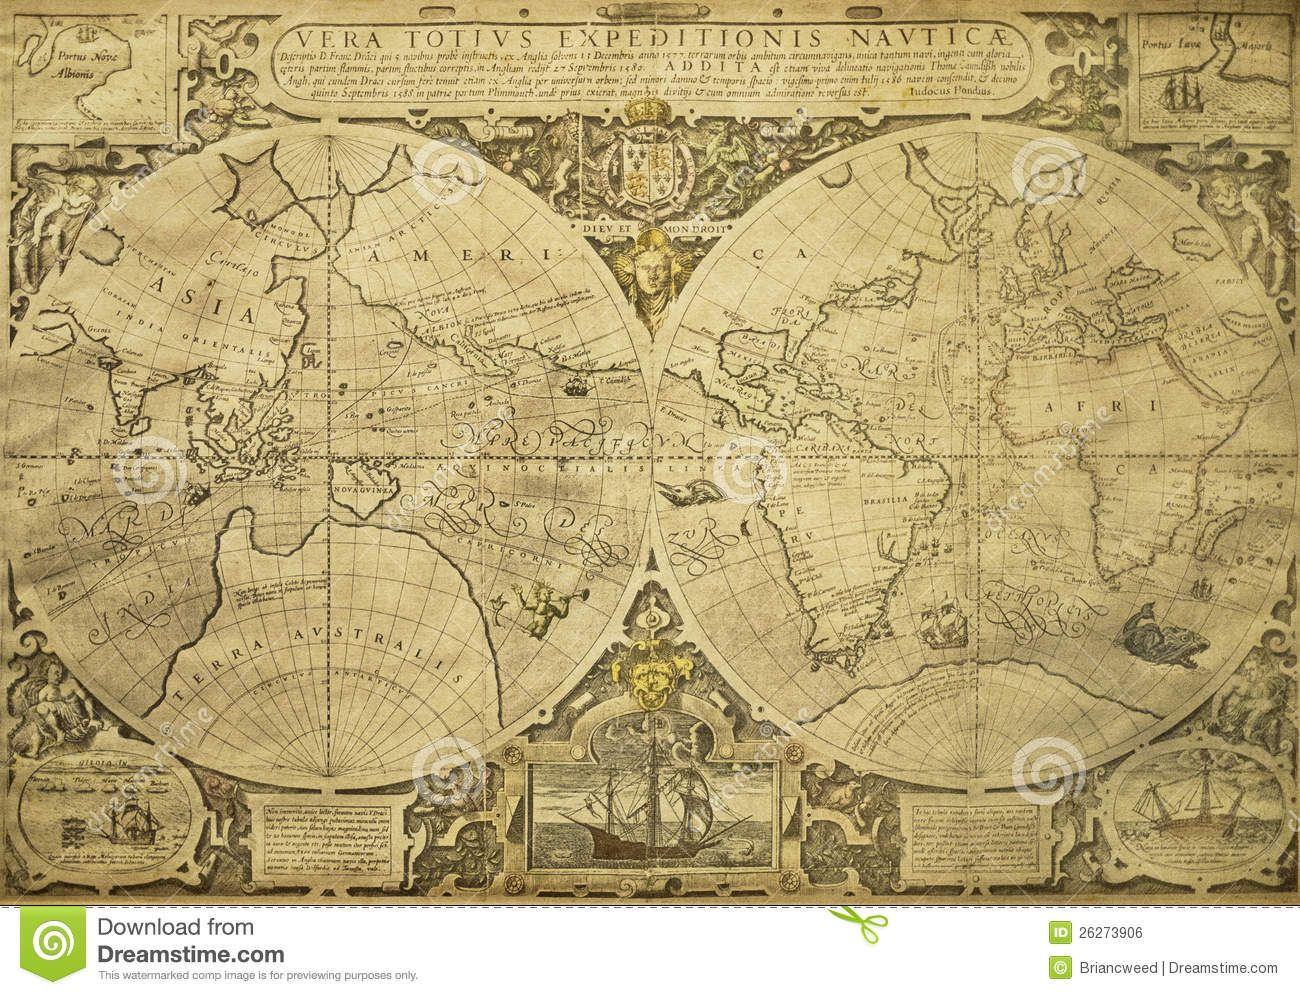 Vintage world map download from over 55 million high quality stock vintage world map download from over 55 million high quality stock photos images vectors sign up for free today image 26273906 gumiabroncs Gallery